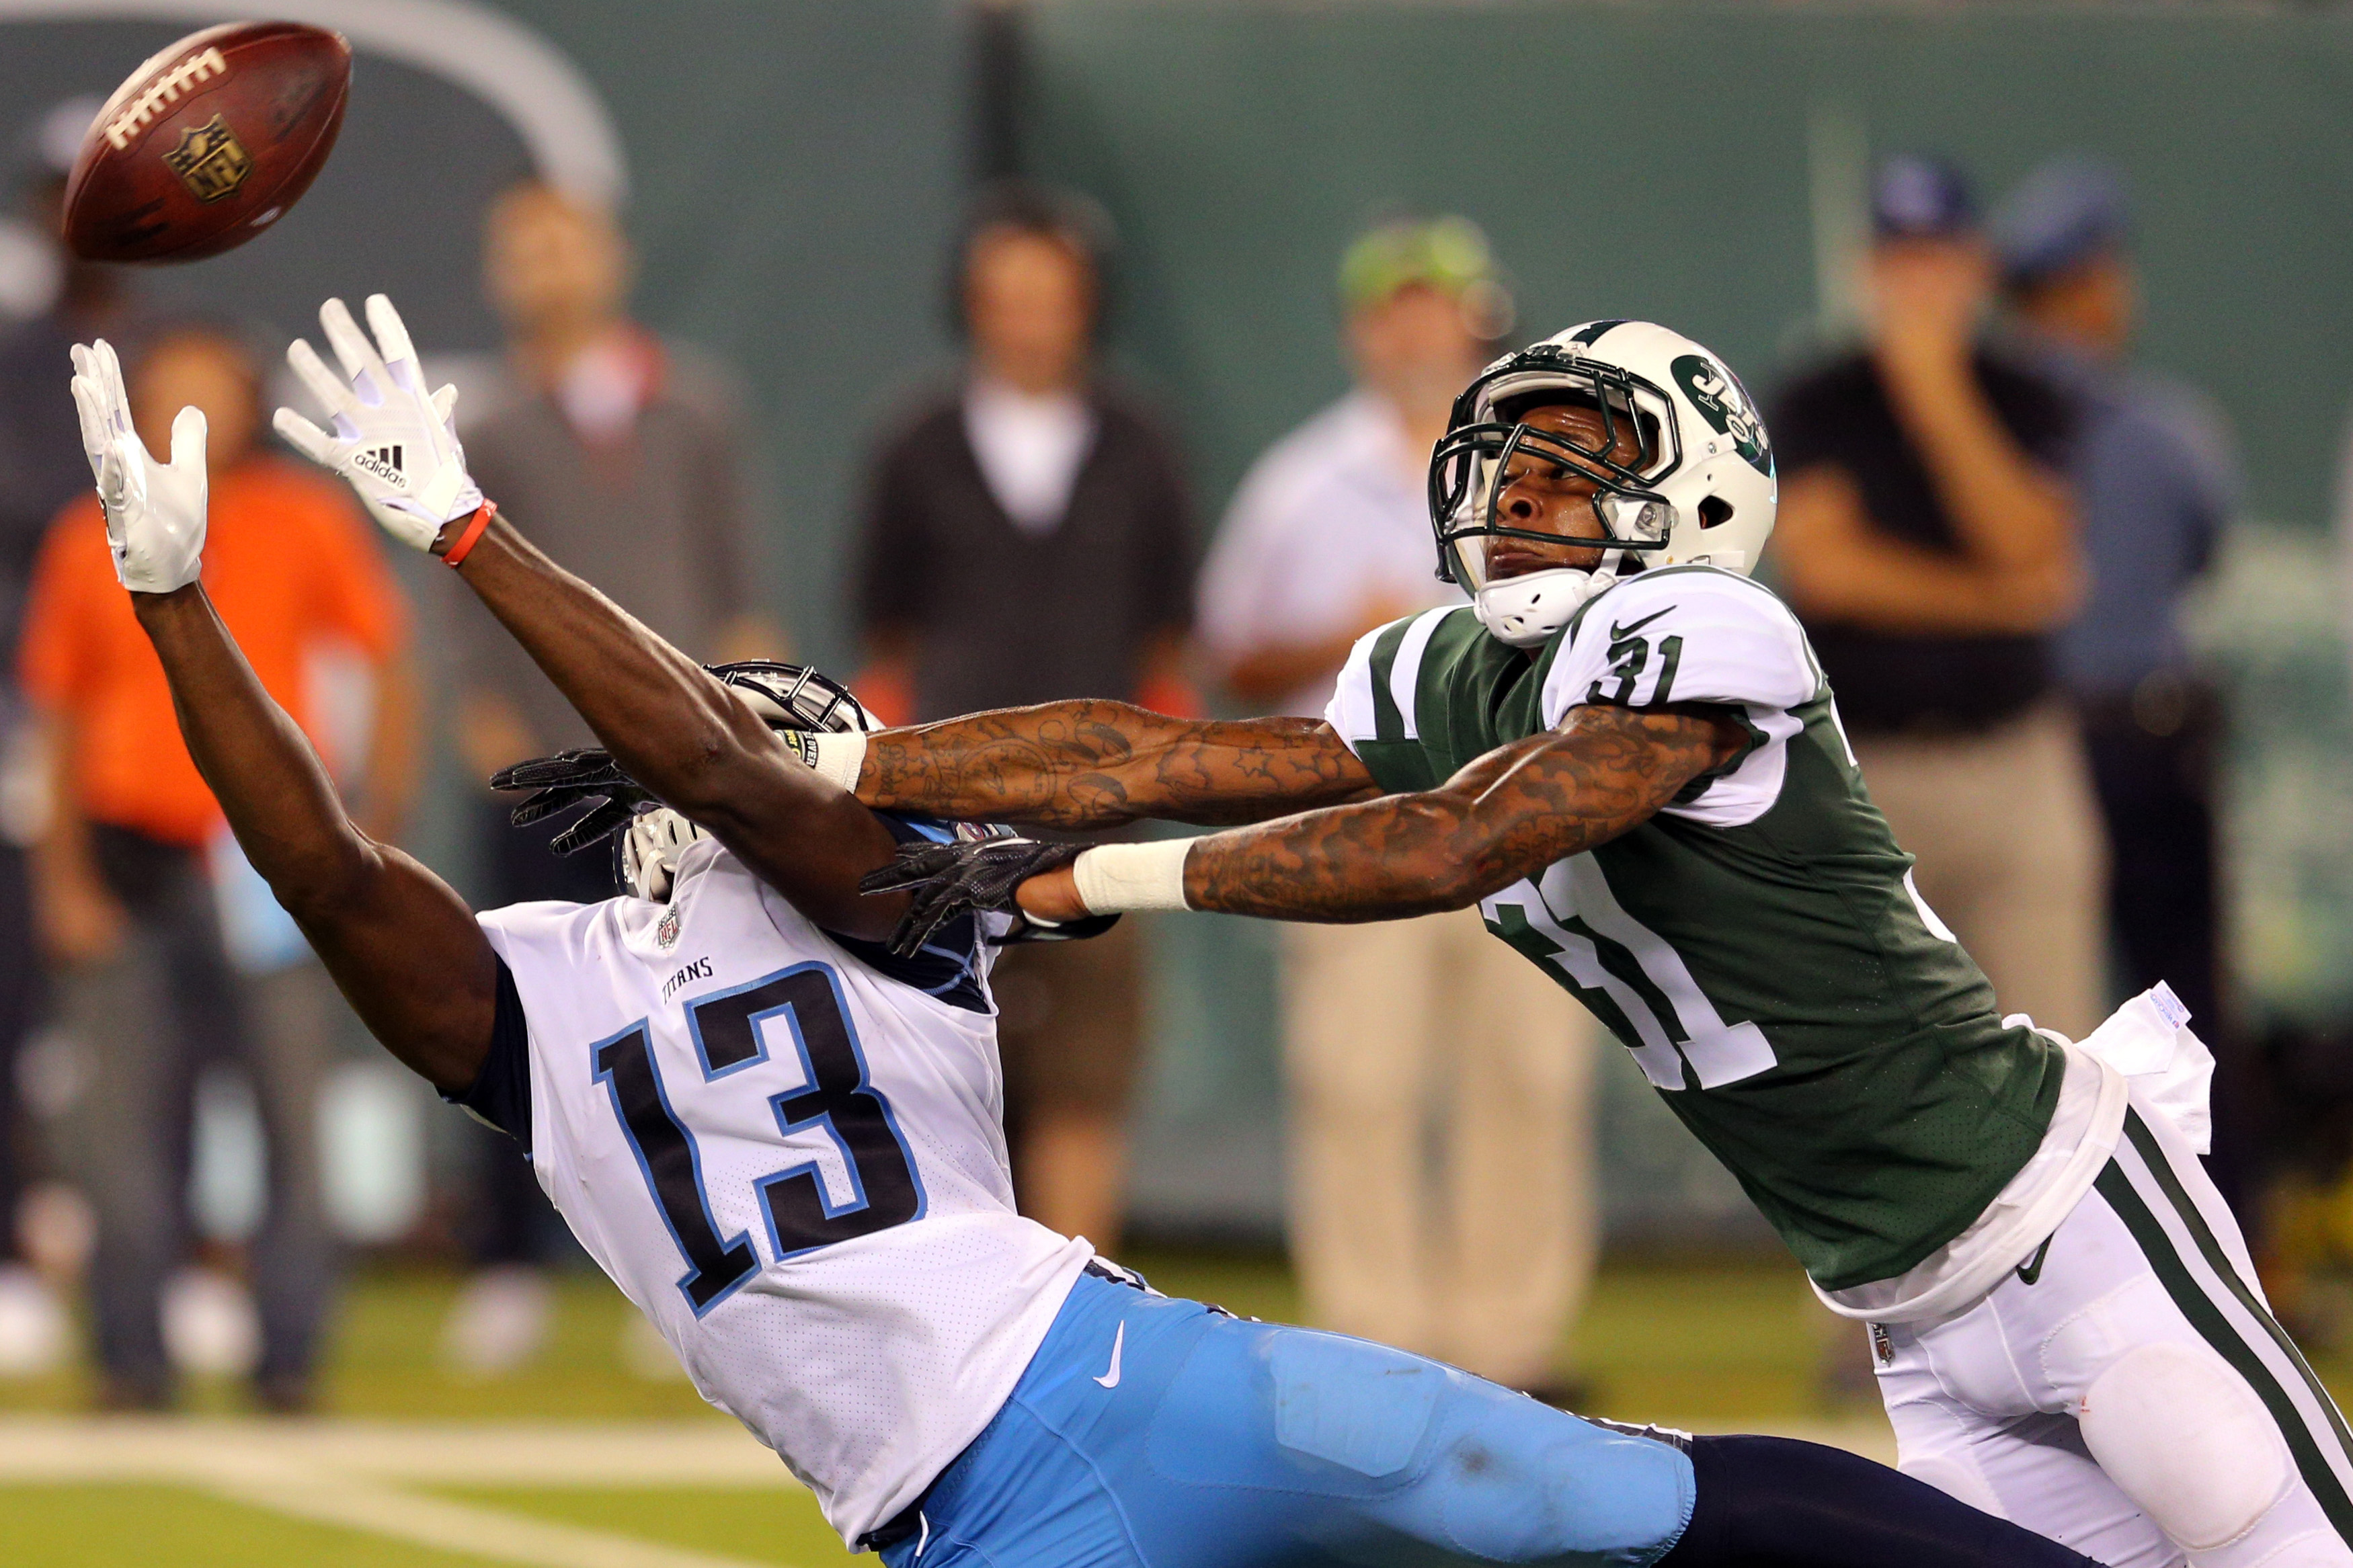 NFL: Tennessee Titans at New York Jets